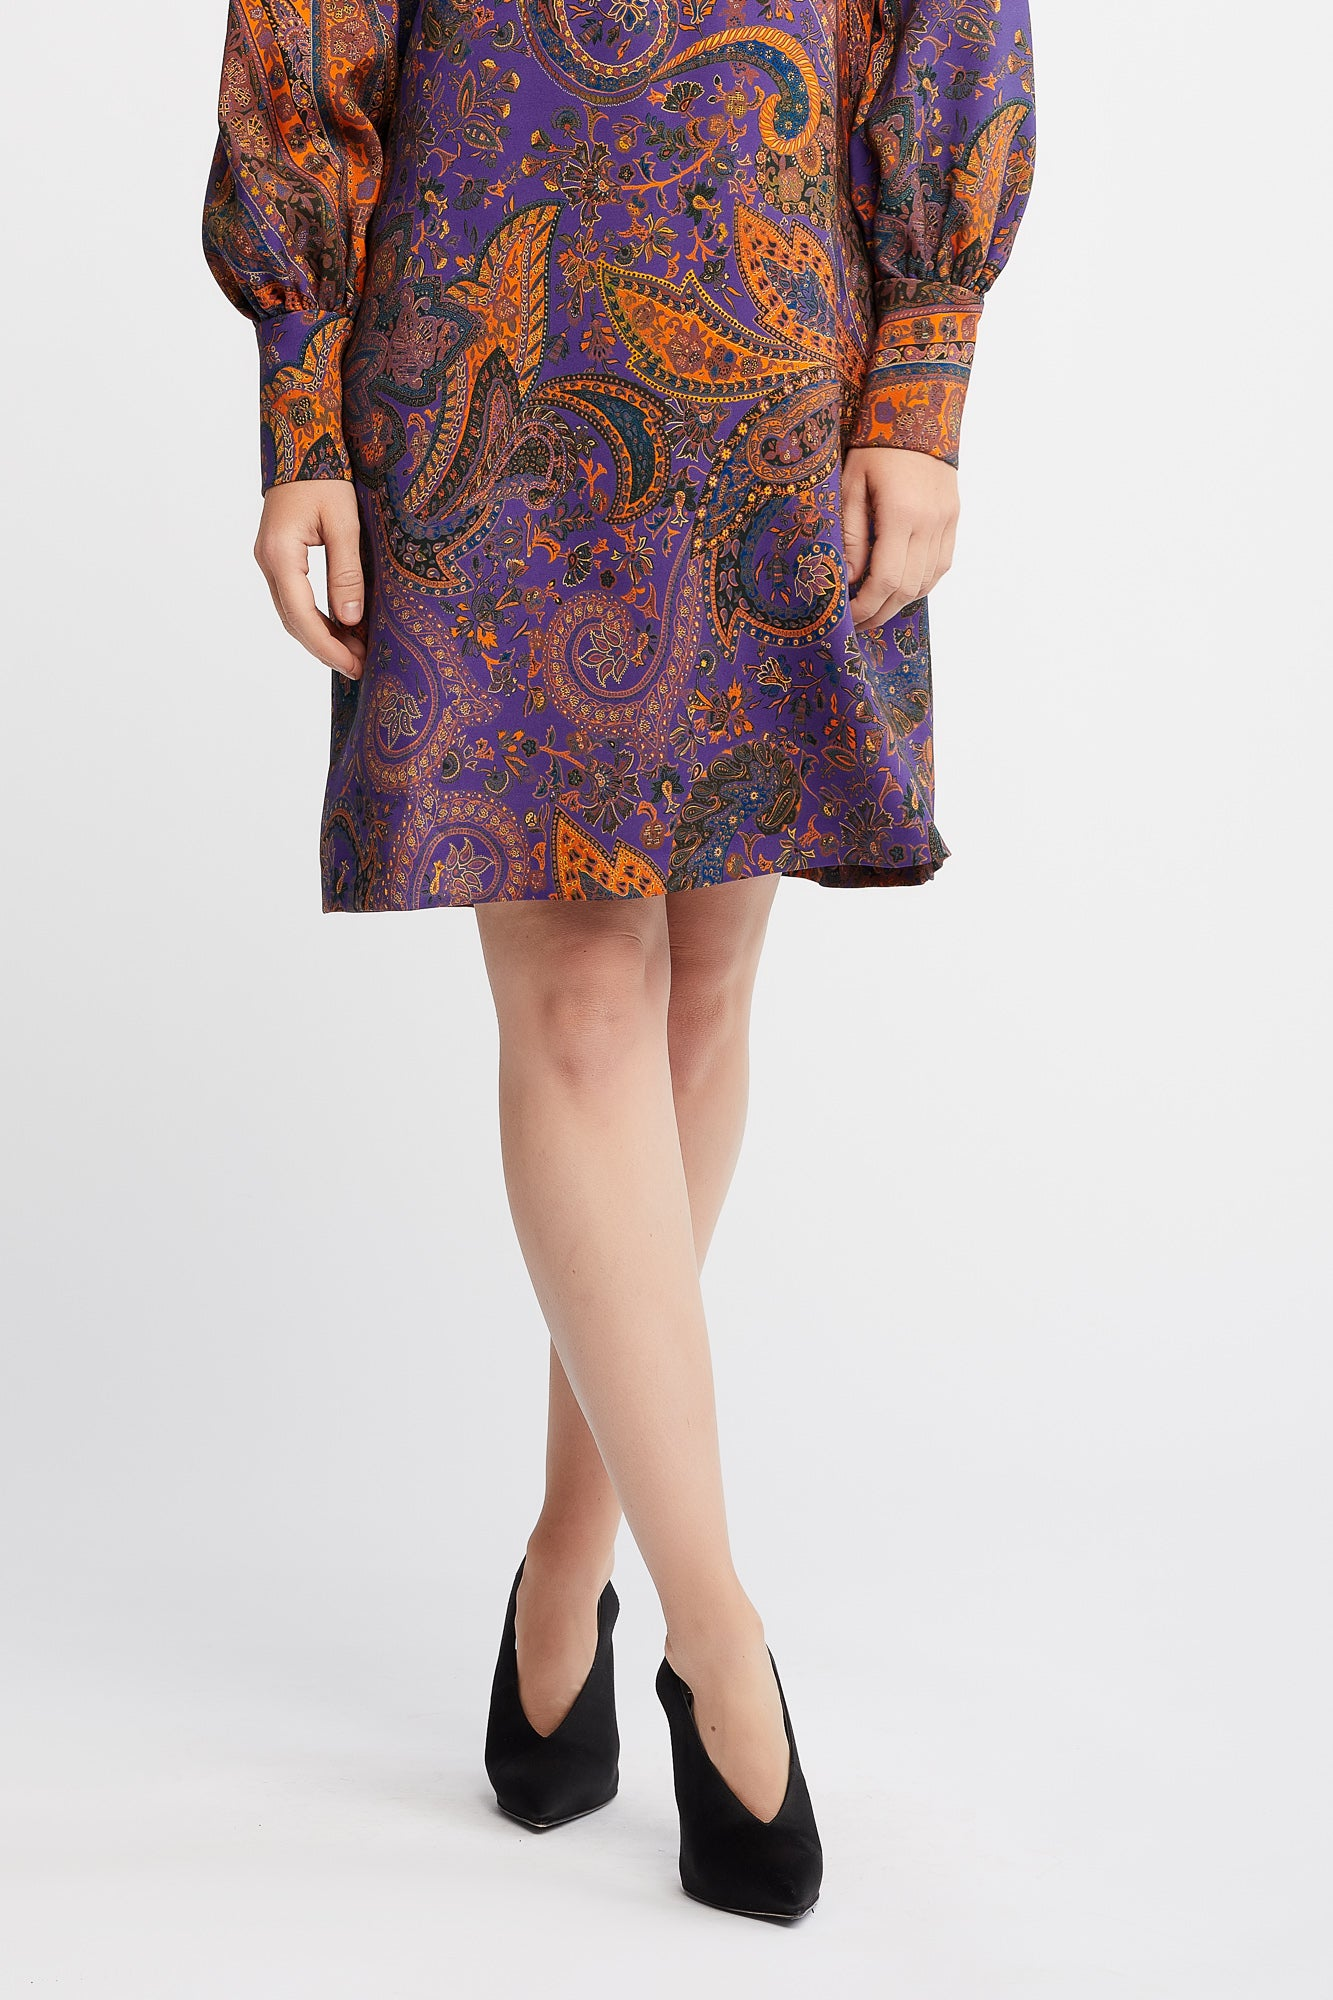 Kiki Long Sleeve Short Day dress, Work dress and Cocktail Dress in Paisley